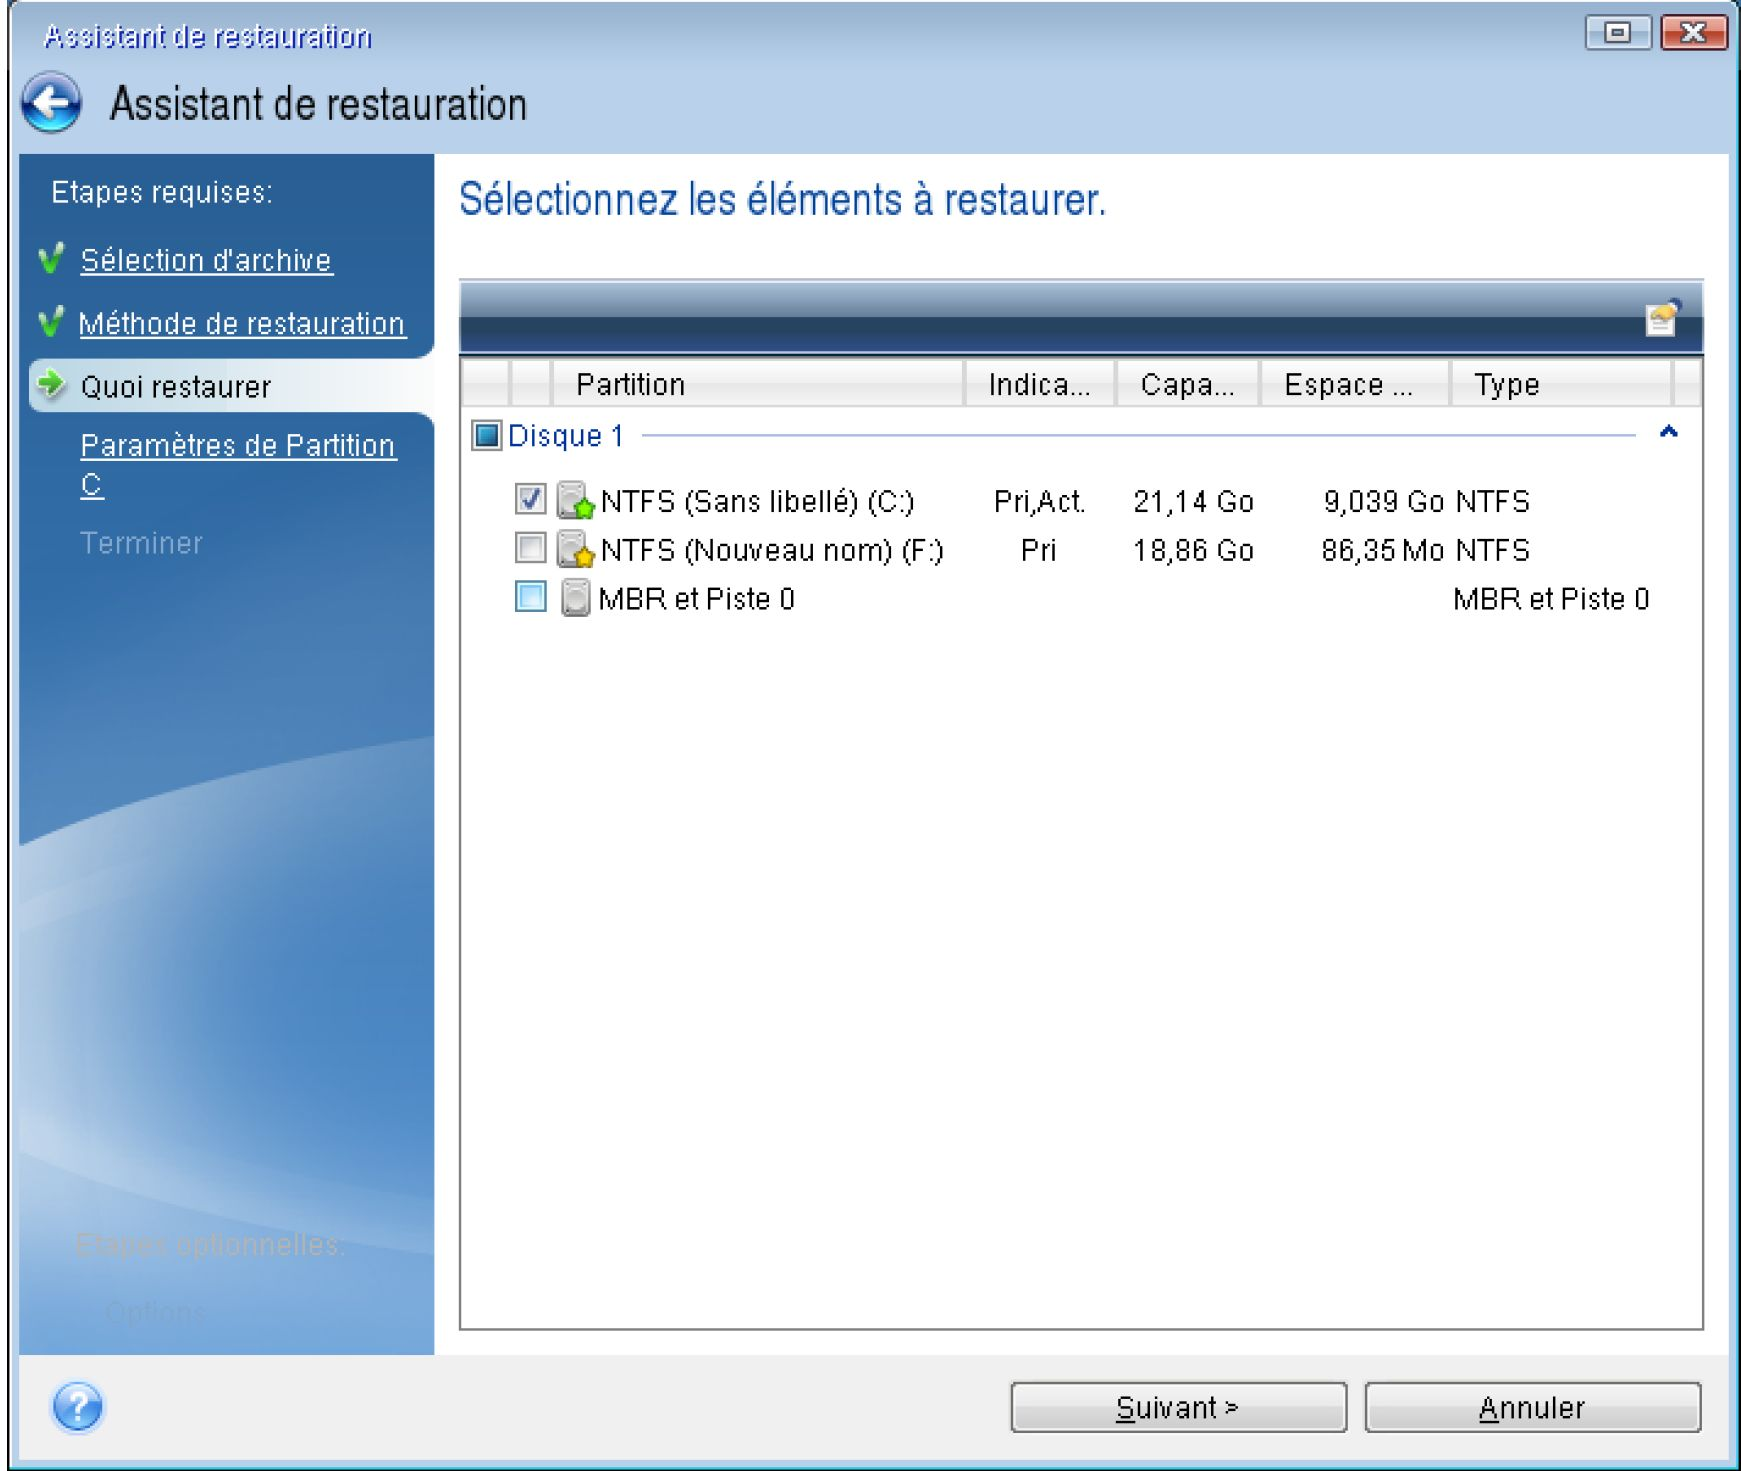 797892Acronisrestauration04